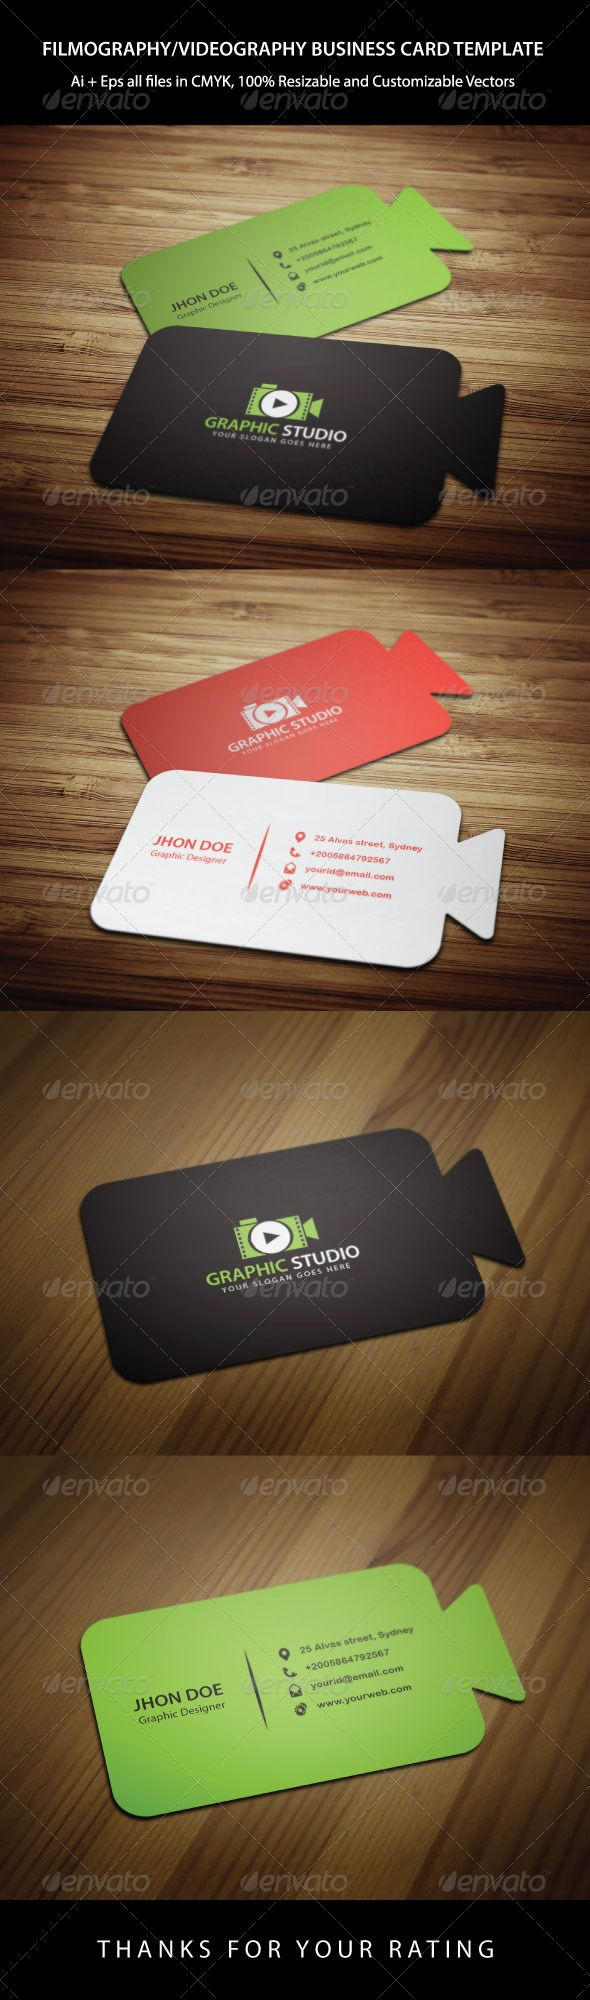 122 best business cards images on pinterest corporate identity cinematography business card template magicingreecefo Images